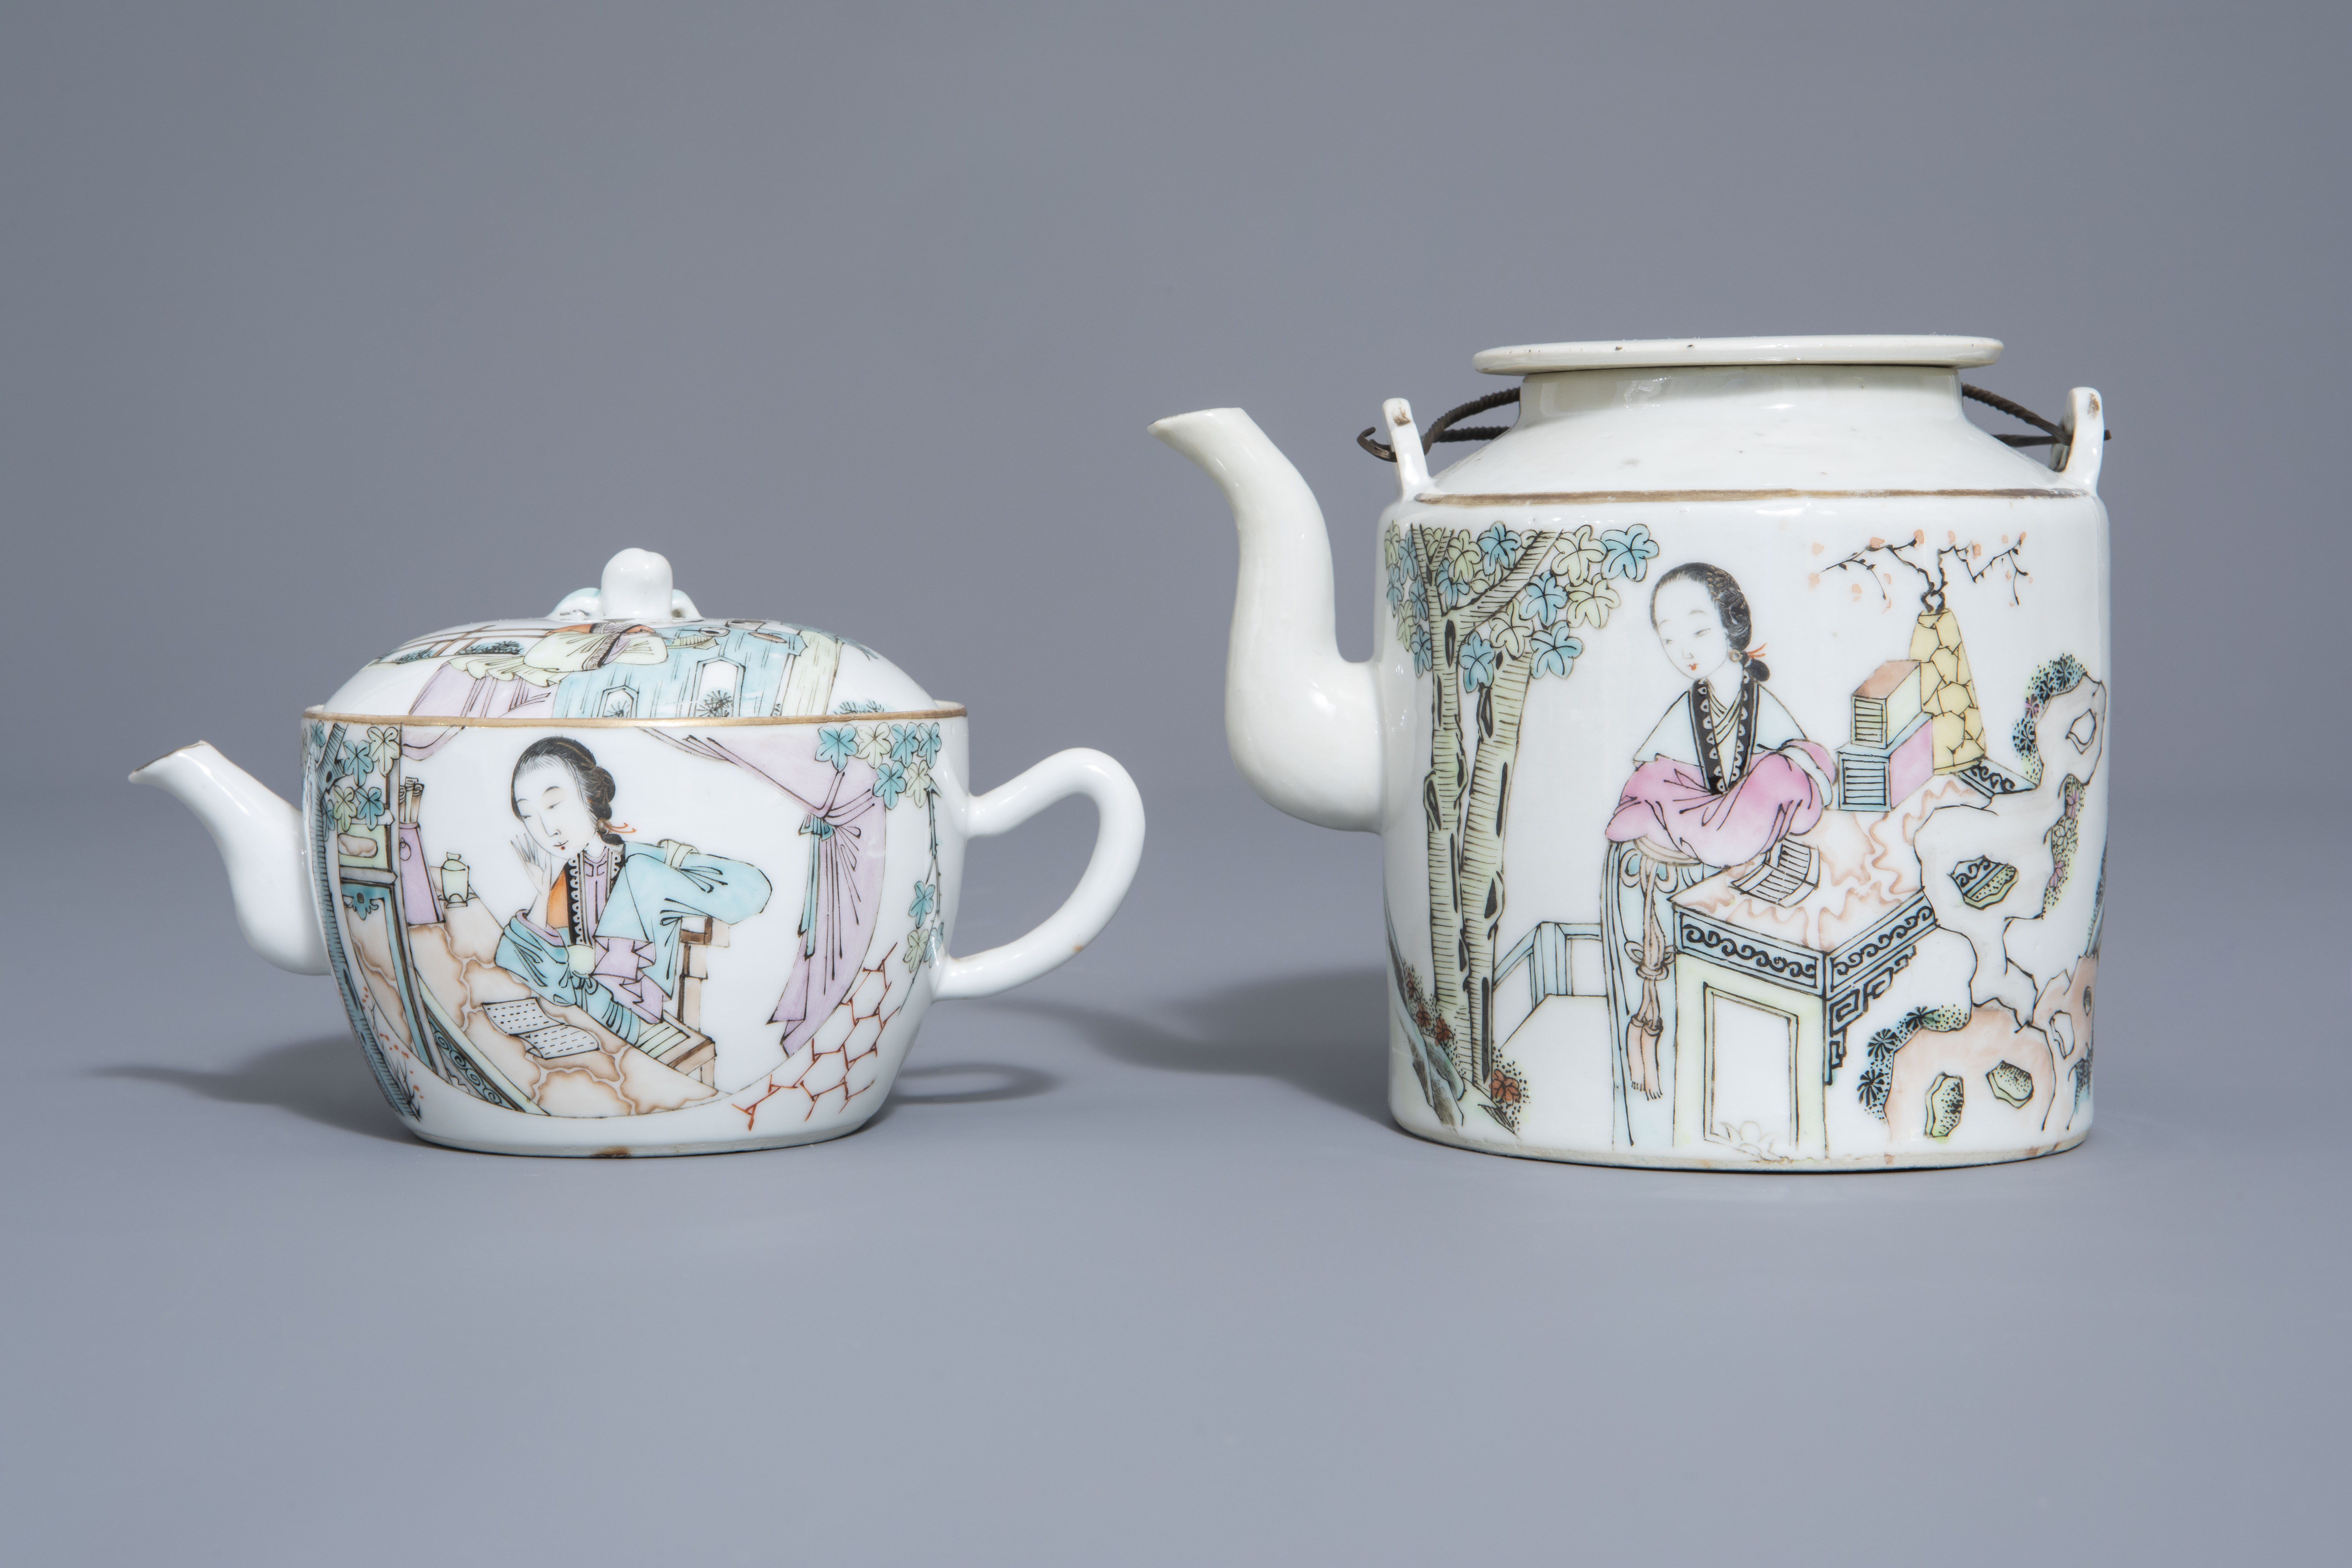 A Chinese seven-piece qianjiang cai tea service with figurative design, 19th/20th C. - Image 2 of 19